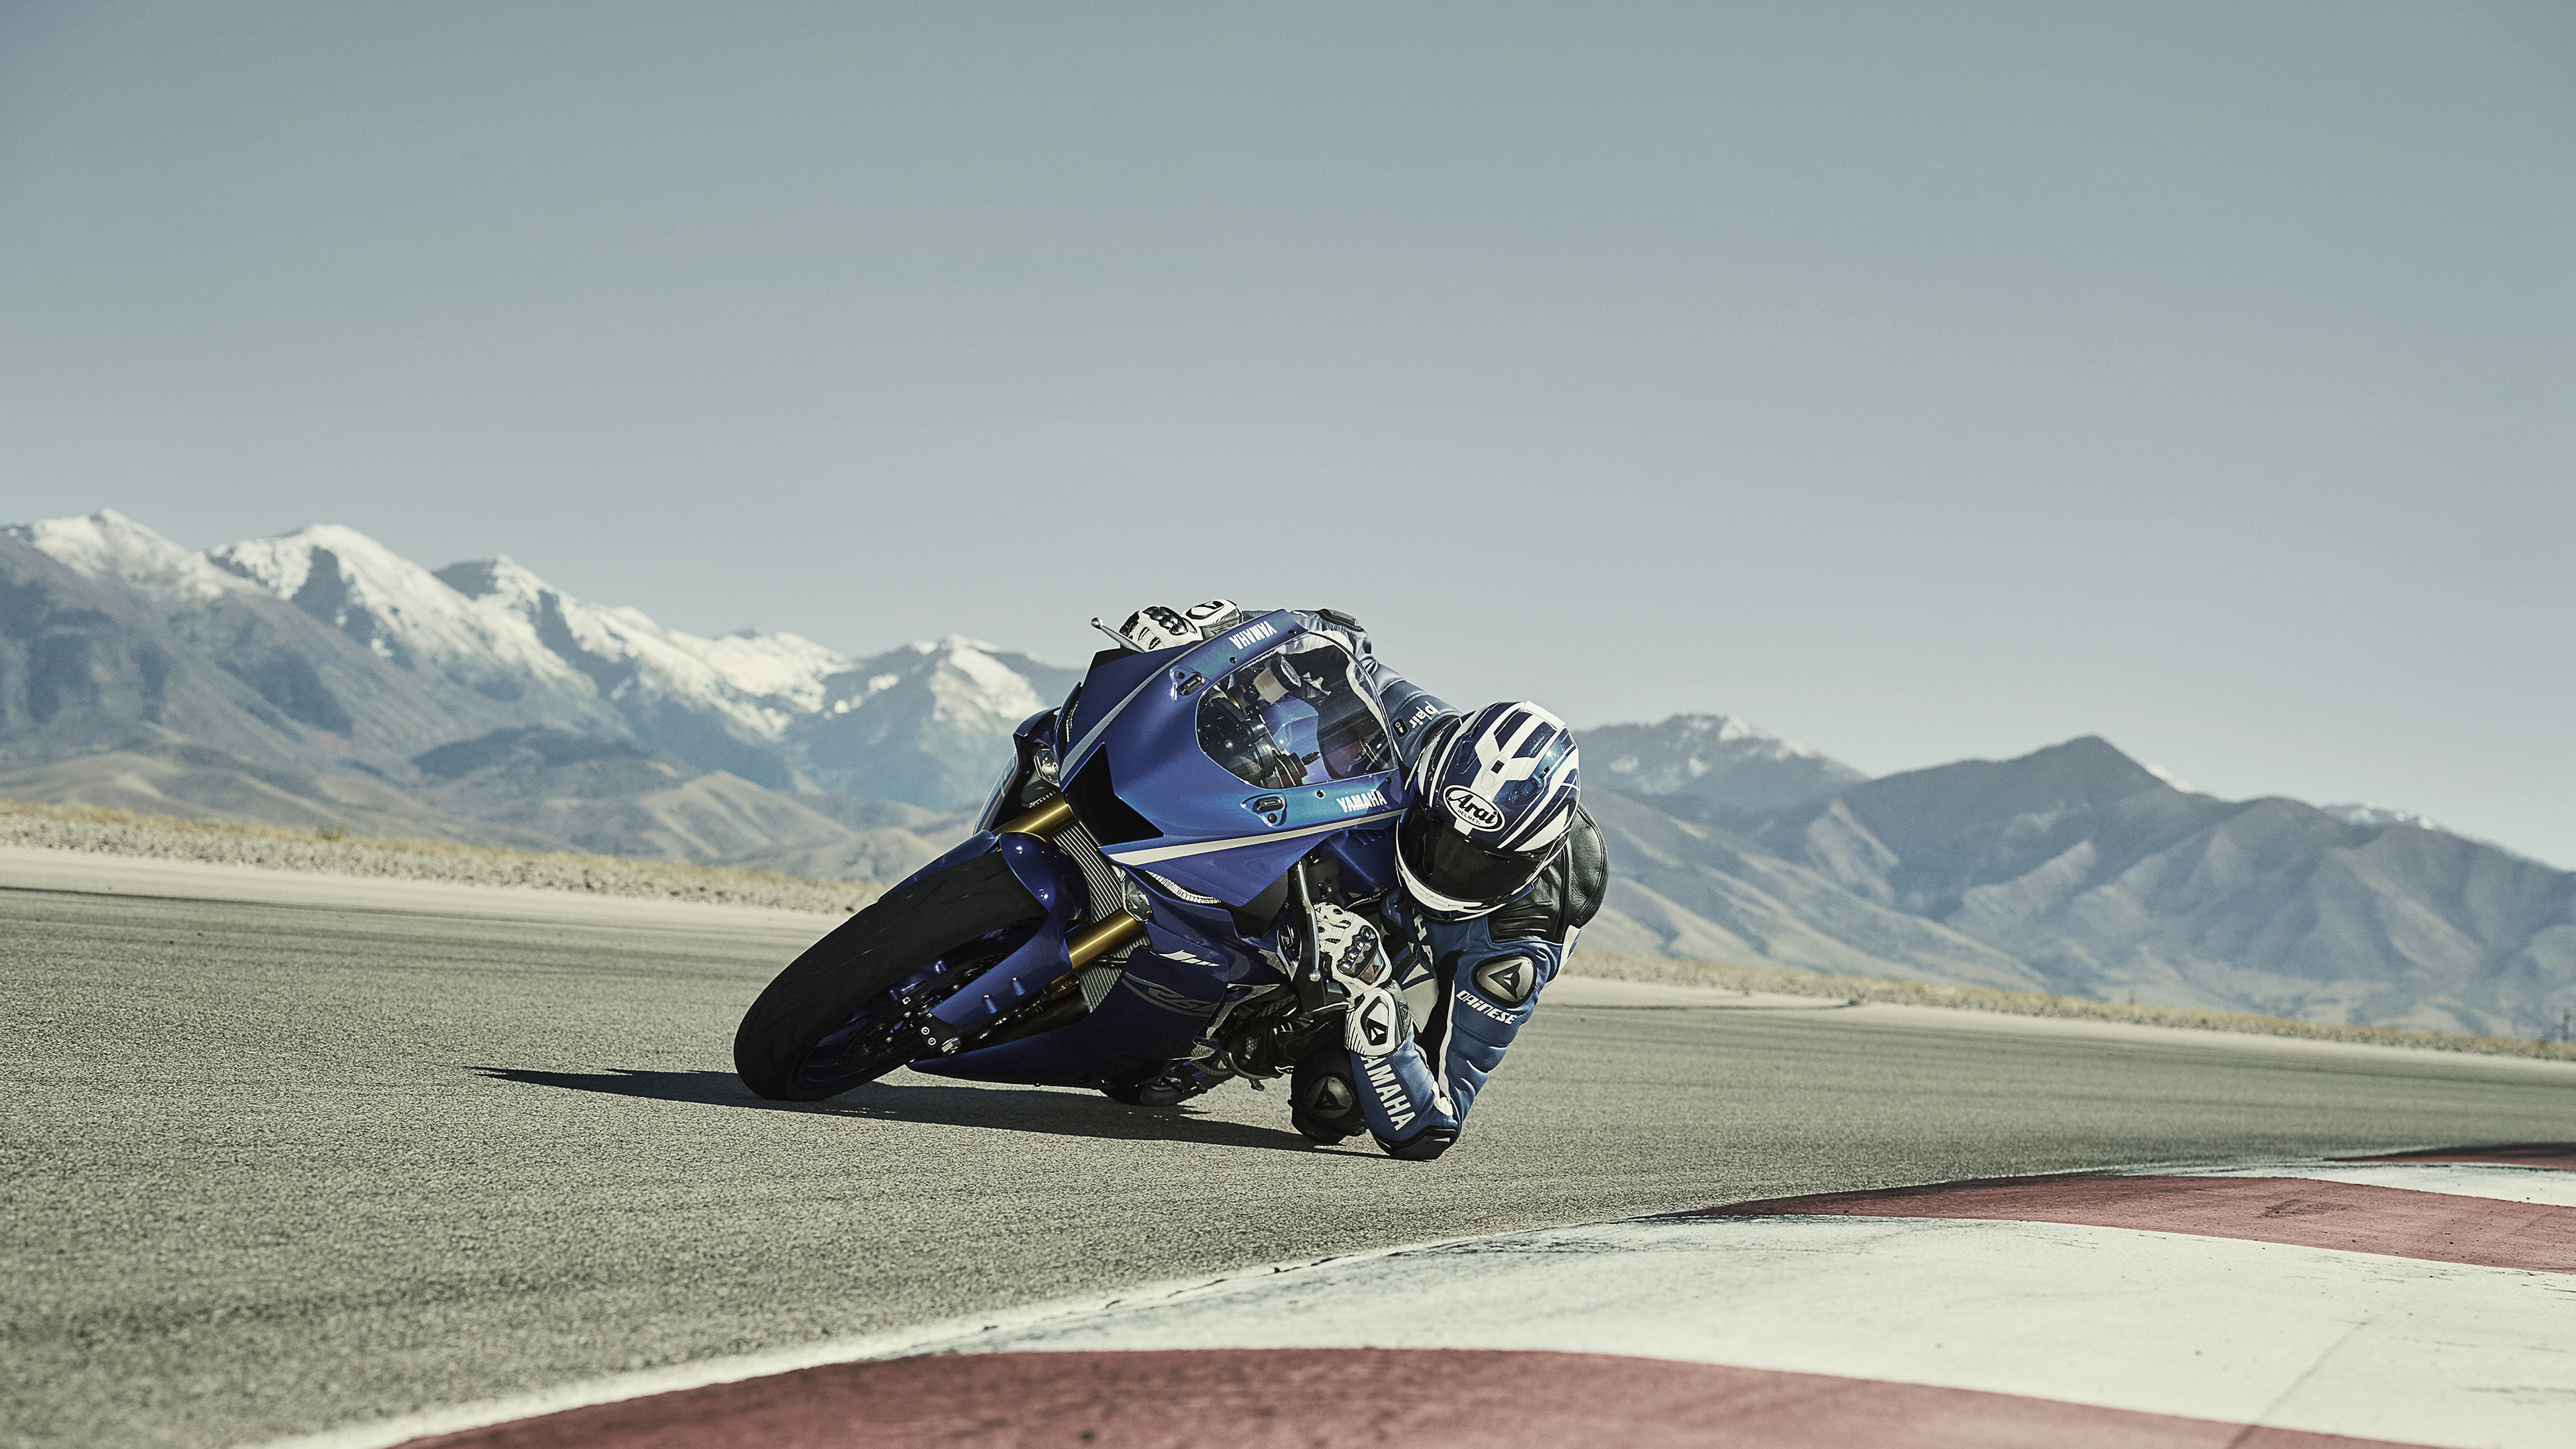 yamaha r6 4k 2017 1536316294 - Yamaha R6 4k 2017 - yamaha wallpapers, yamaha r6 wallpapers 4k, hd-wallpapers, bikes wallpapers, 4k-wallpapers